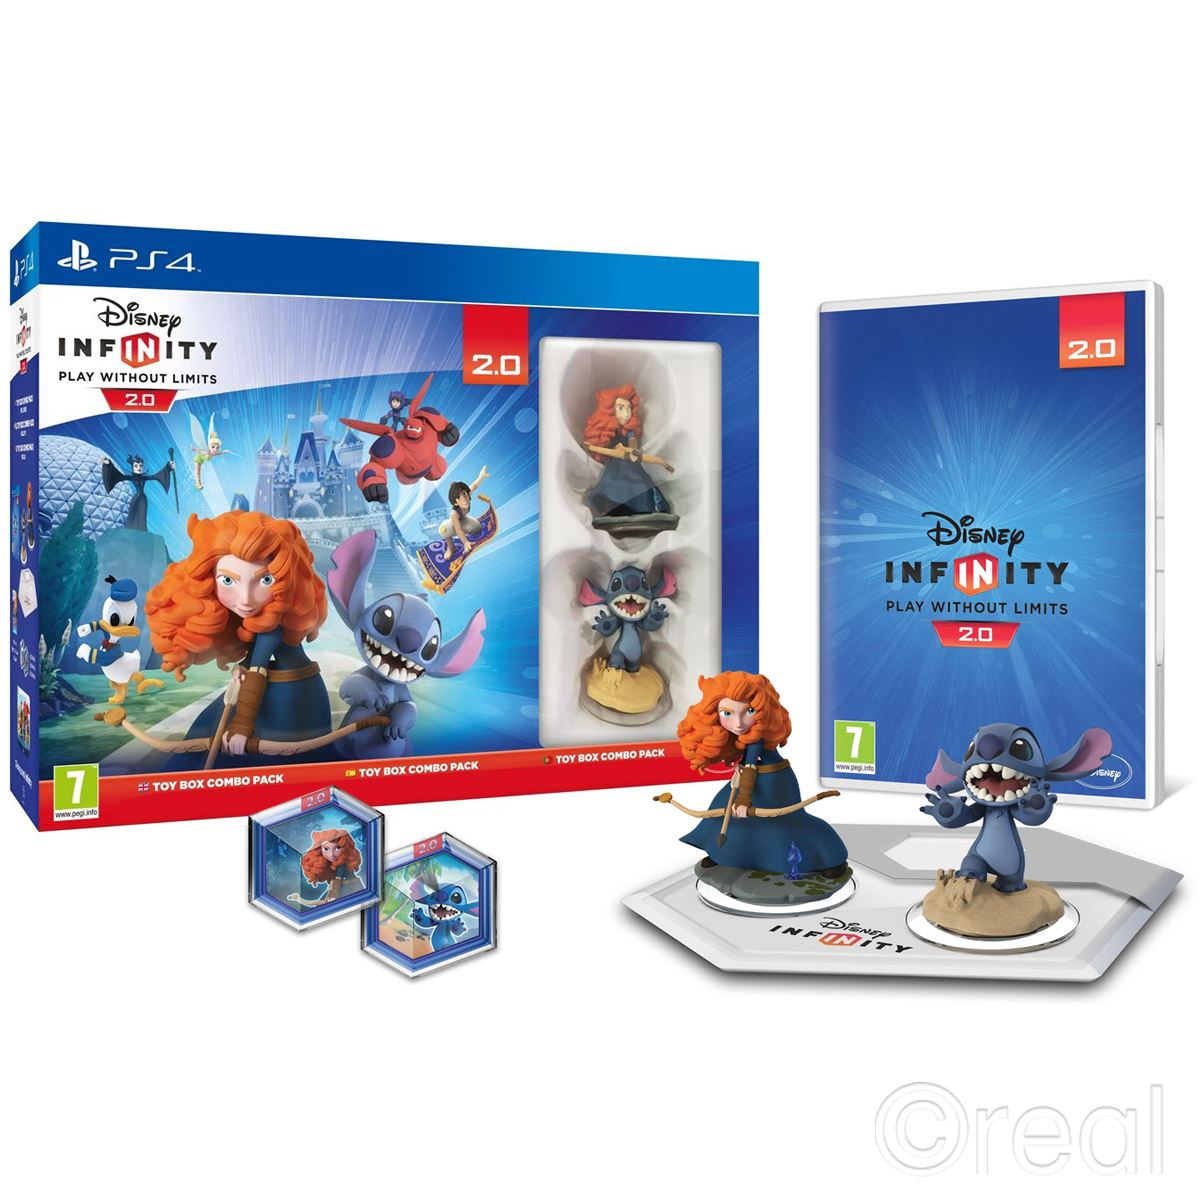 Disney Games For Ps4 : New ps disney infinity toy box combo pack brave